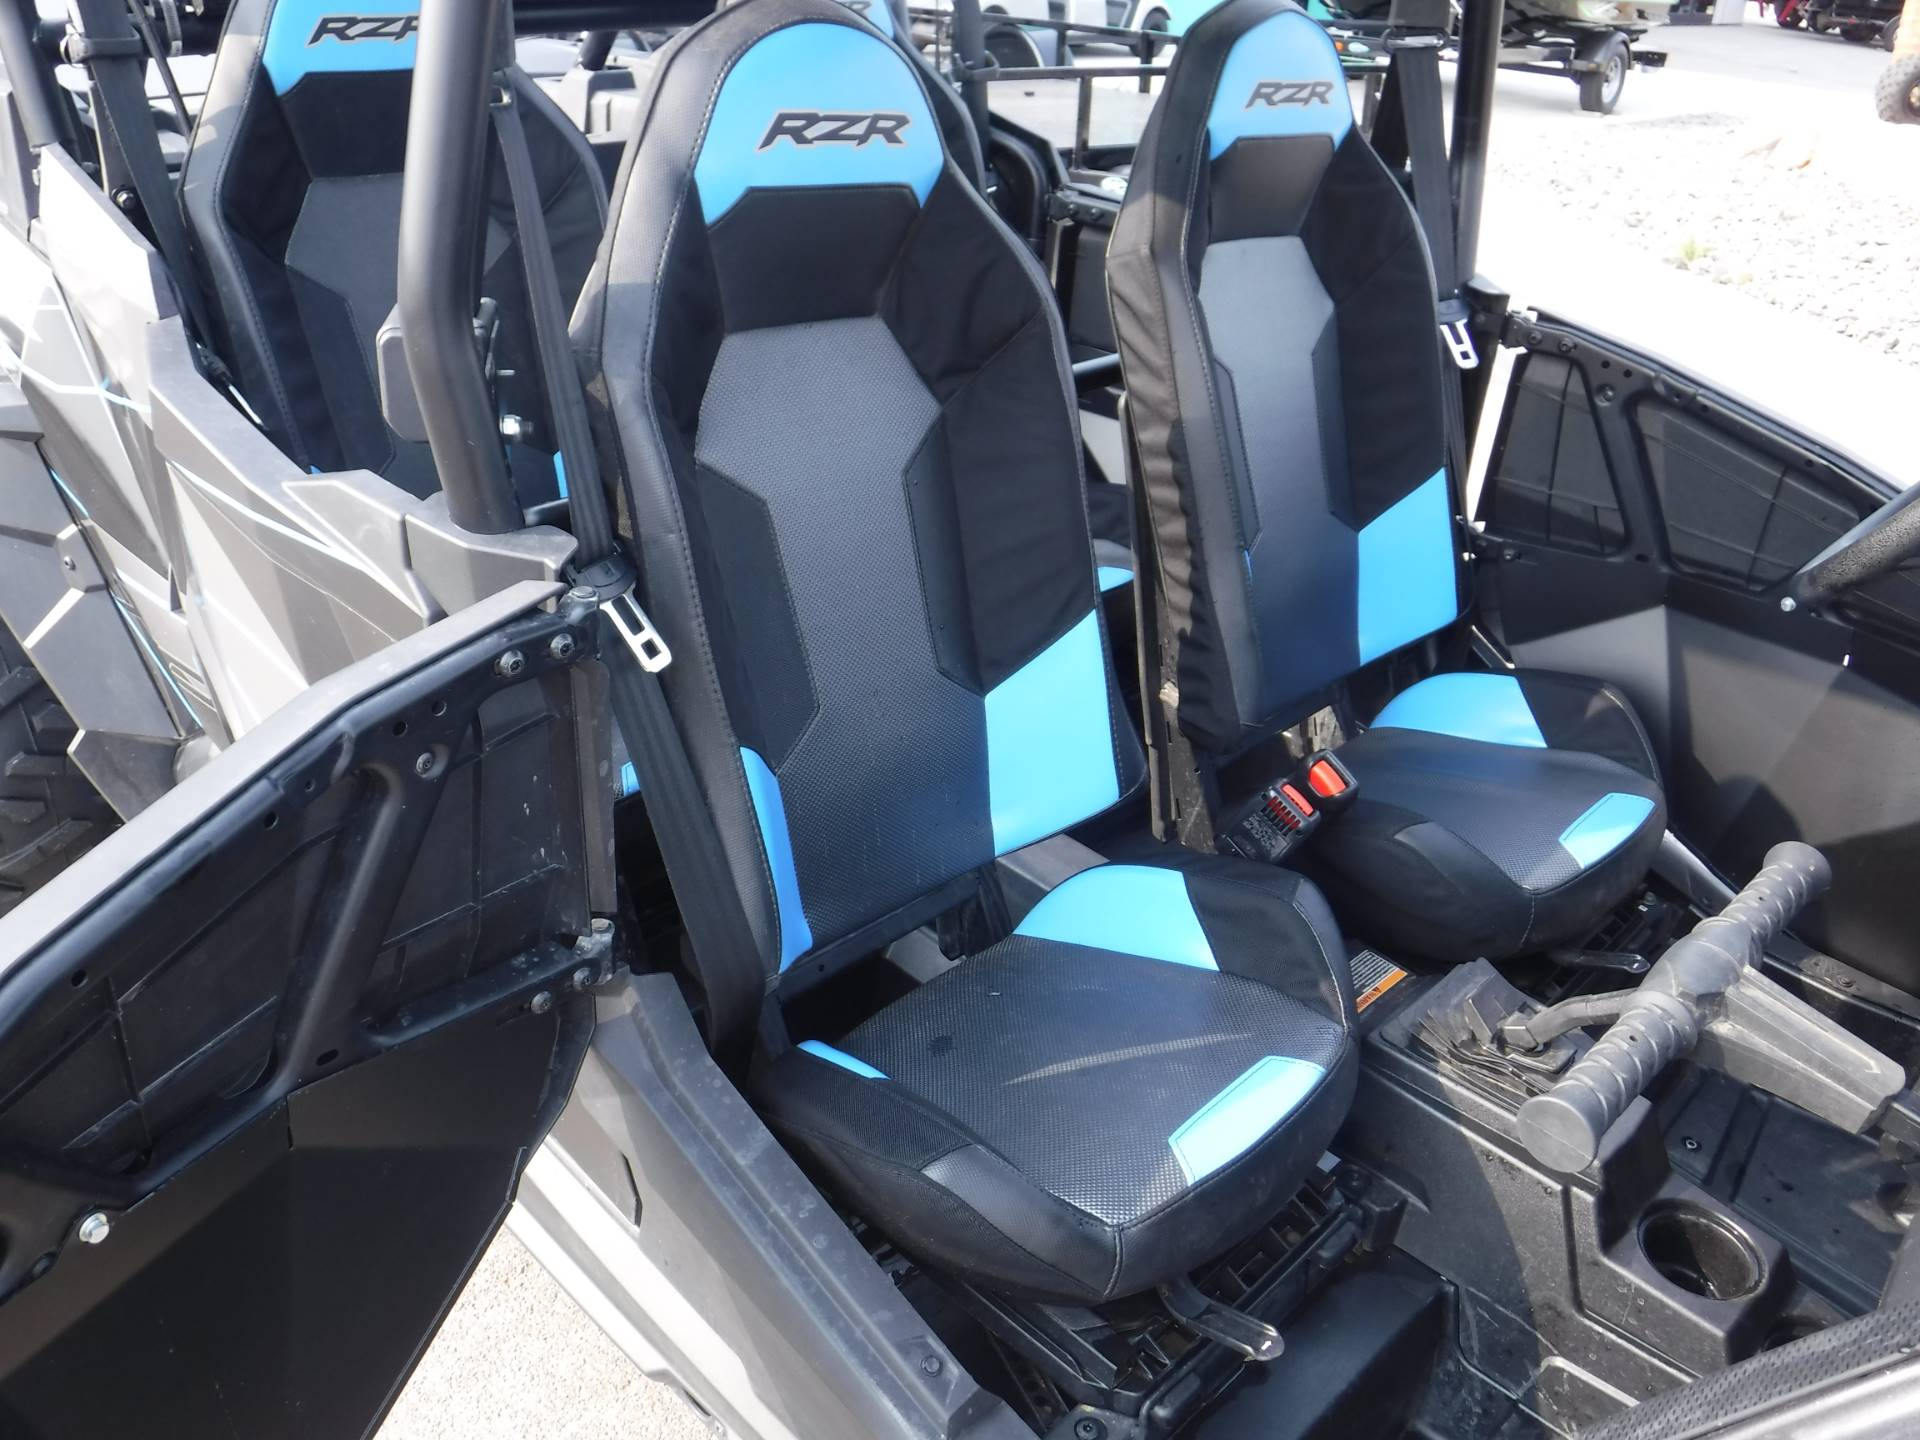 2019 Polaris RZR XP 4 Turbo in Spearfish, South Dakota - Photo 8